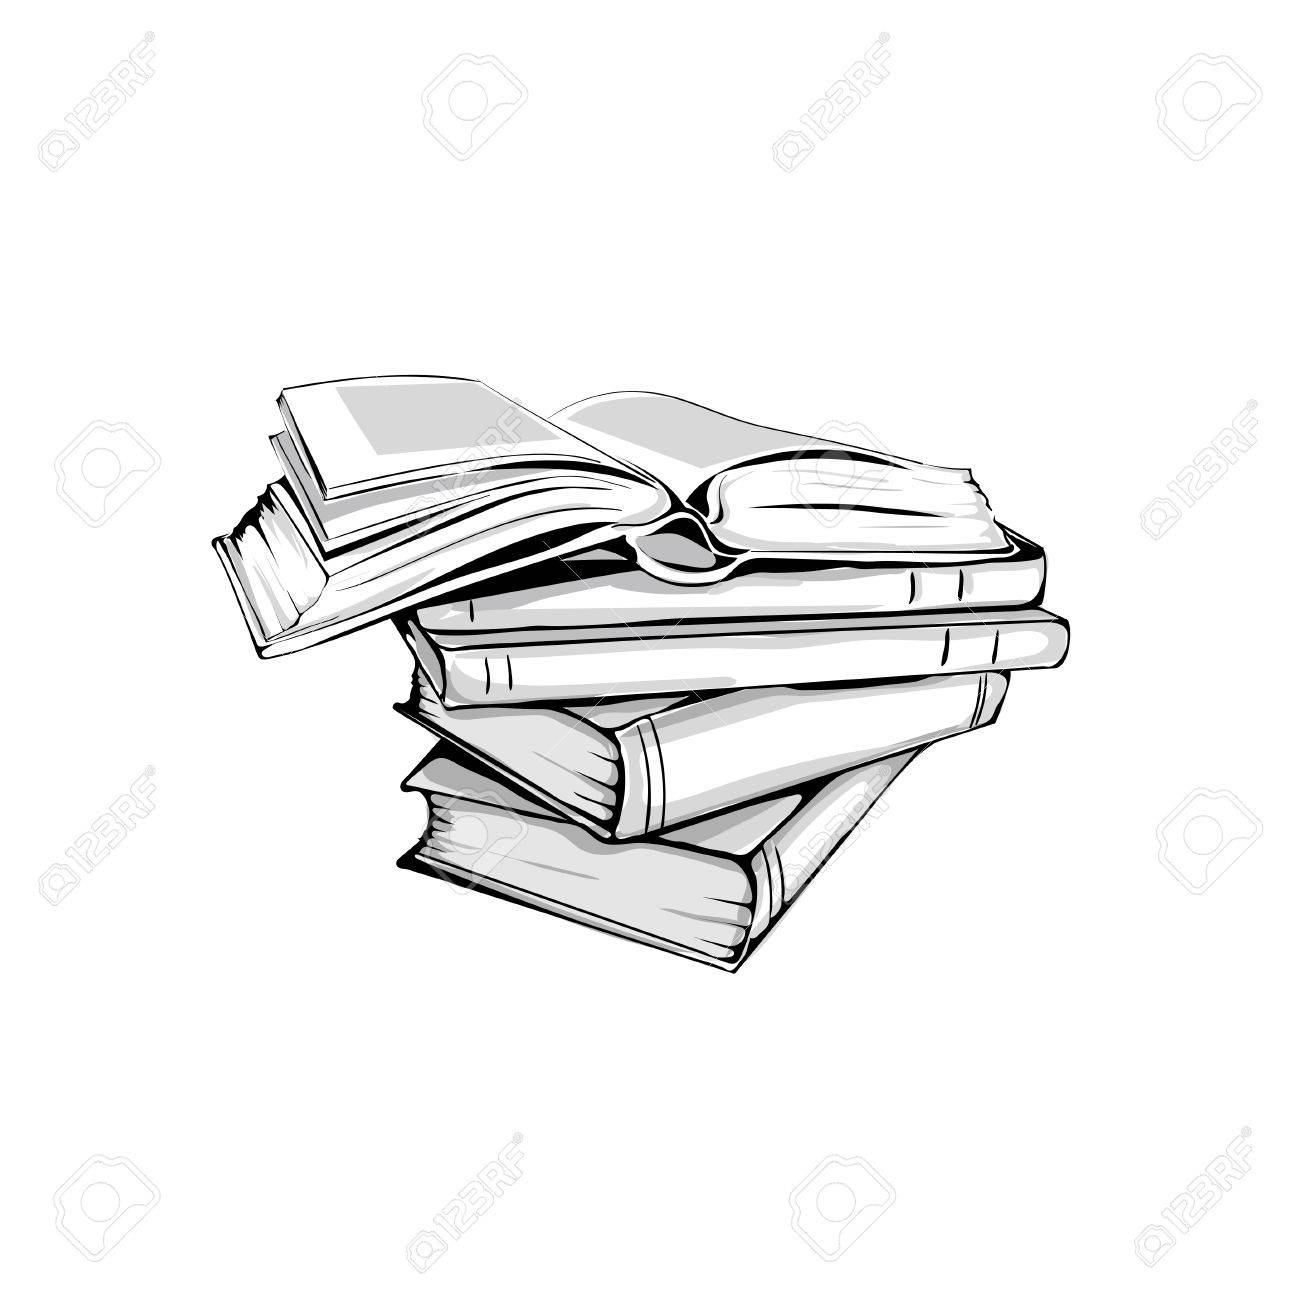 Sketch of a stack of books opened and closed books stacked books and single